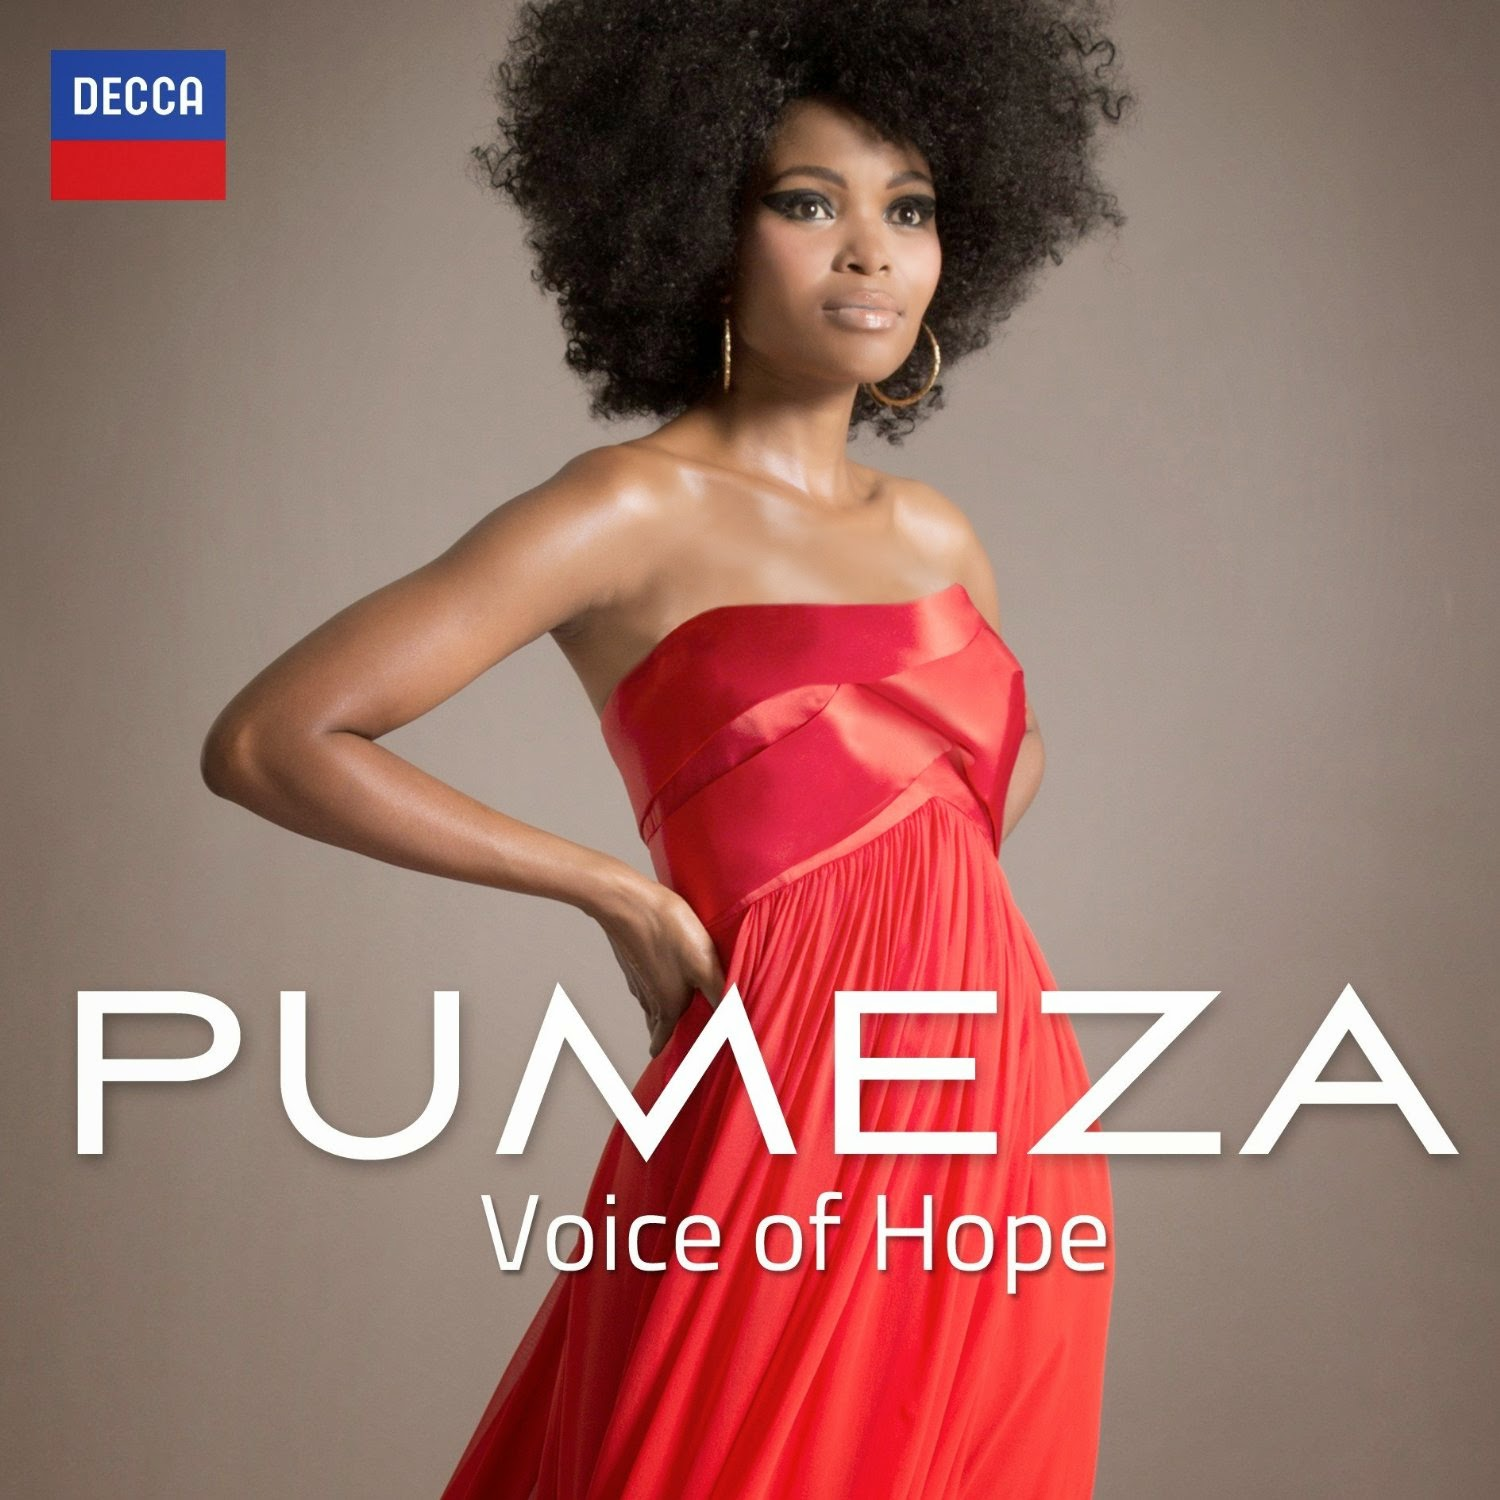 Pumeza - Voice of Hope: Decca